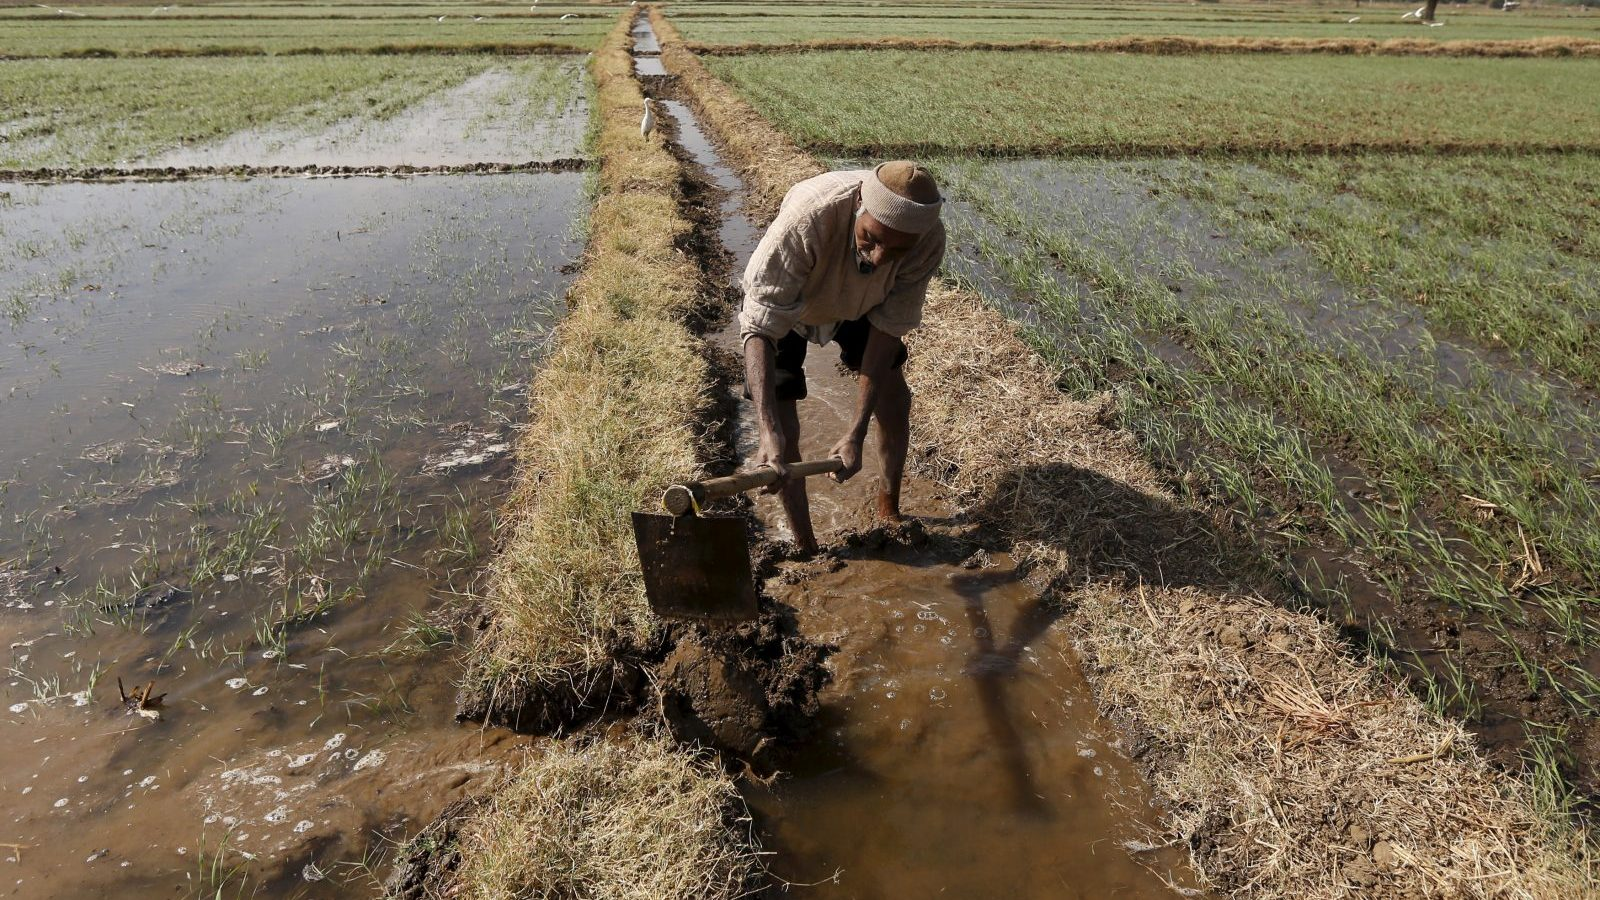 A farmer channels water to irrigate his wheat field on the outskirts of Ahmedabad, India, December 15, 2015. India's Prime Minister Narendra Modi will recalibrate budget priorities in 2016 to focus on social initiatives, such as the country's first major crop insurance scheme, while capping previously prioritised infrastructure spending, officials say. Modi splurged on roads and railways this year in a strategy to spur economic growth. But it came partly at the expense of federal programmes for farmers and the poor, suffering through back-to-back drought years. Picture taken December 15, 2015.   REUTERS/Amit Dave - GF10000266582